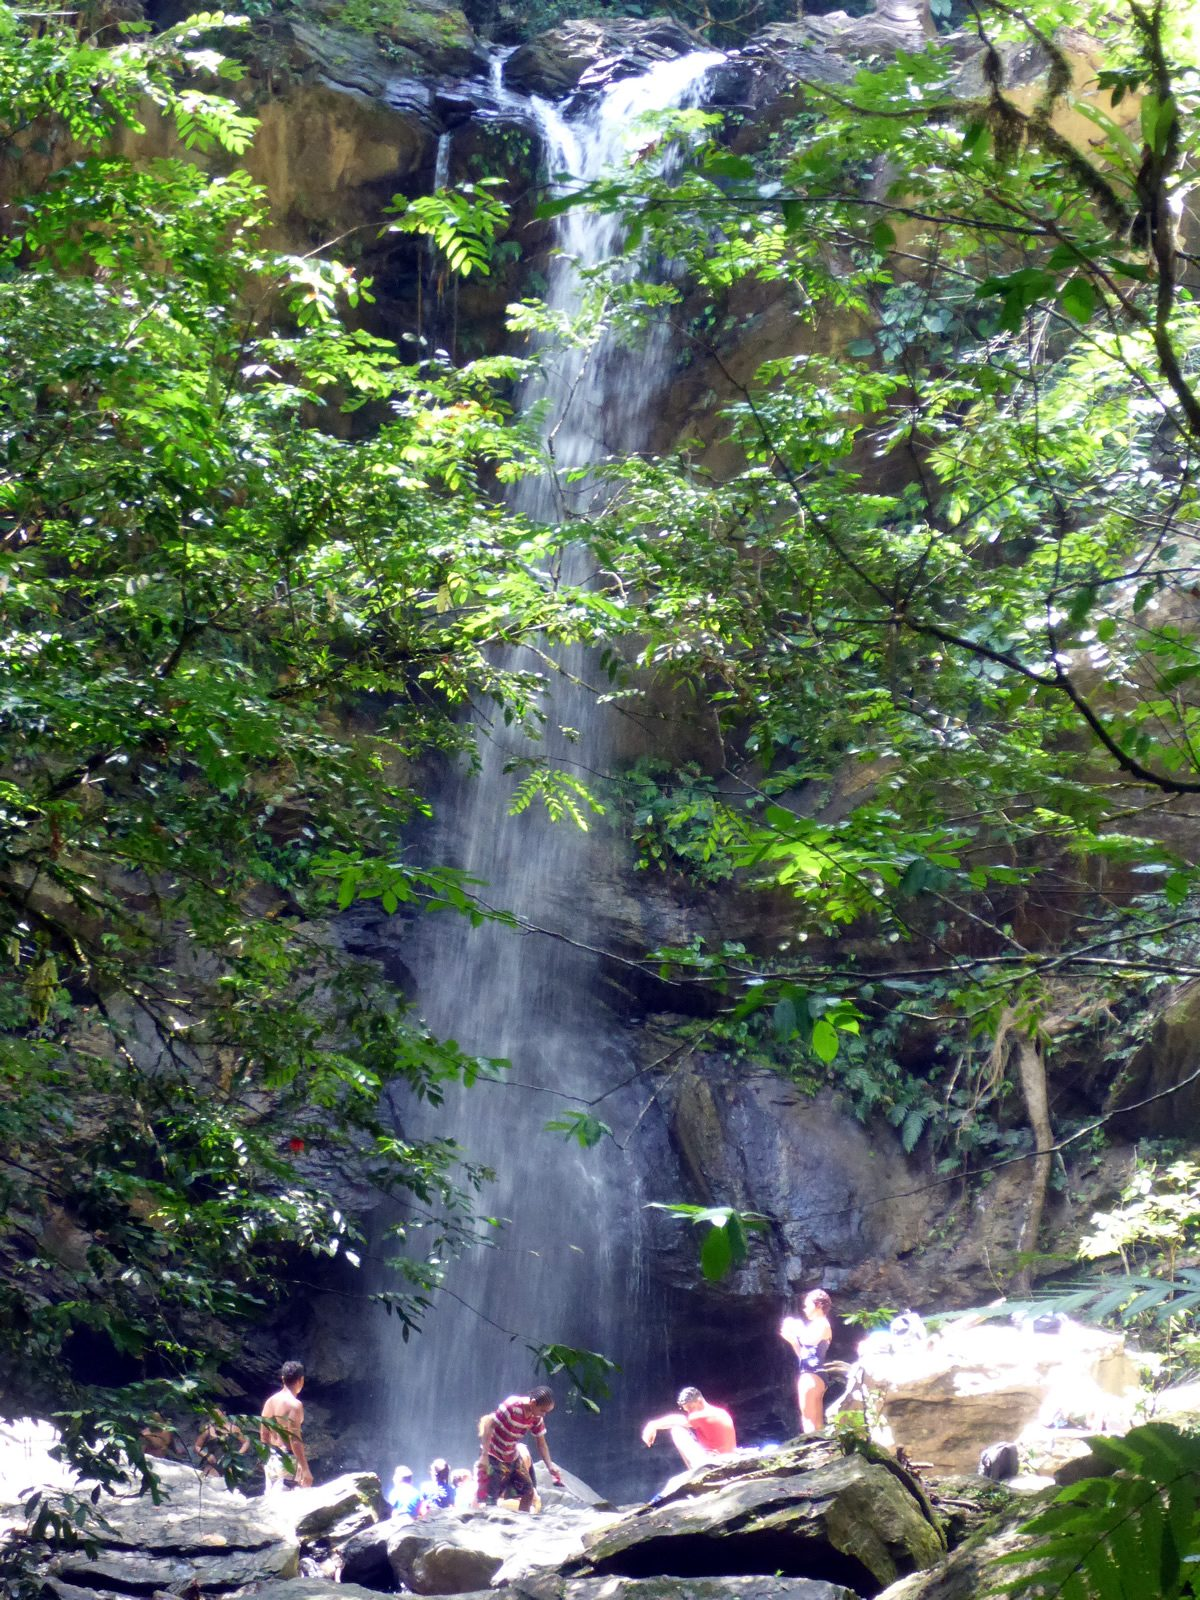 Avocat Waterfall Destination Trinidad And Tobago Tours Holidays Vacations And Travel Guide